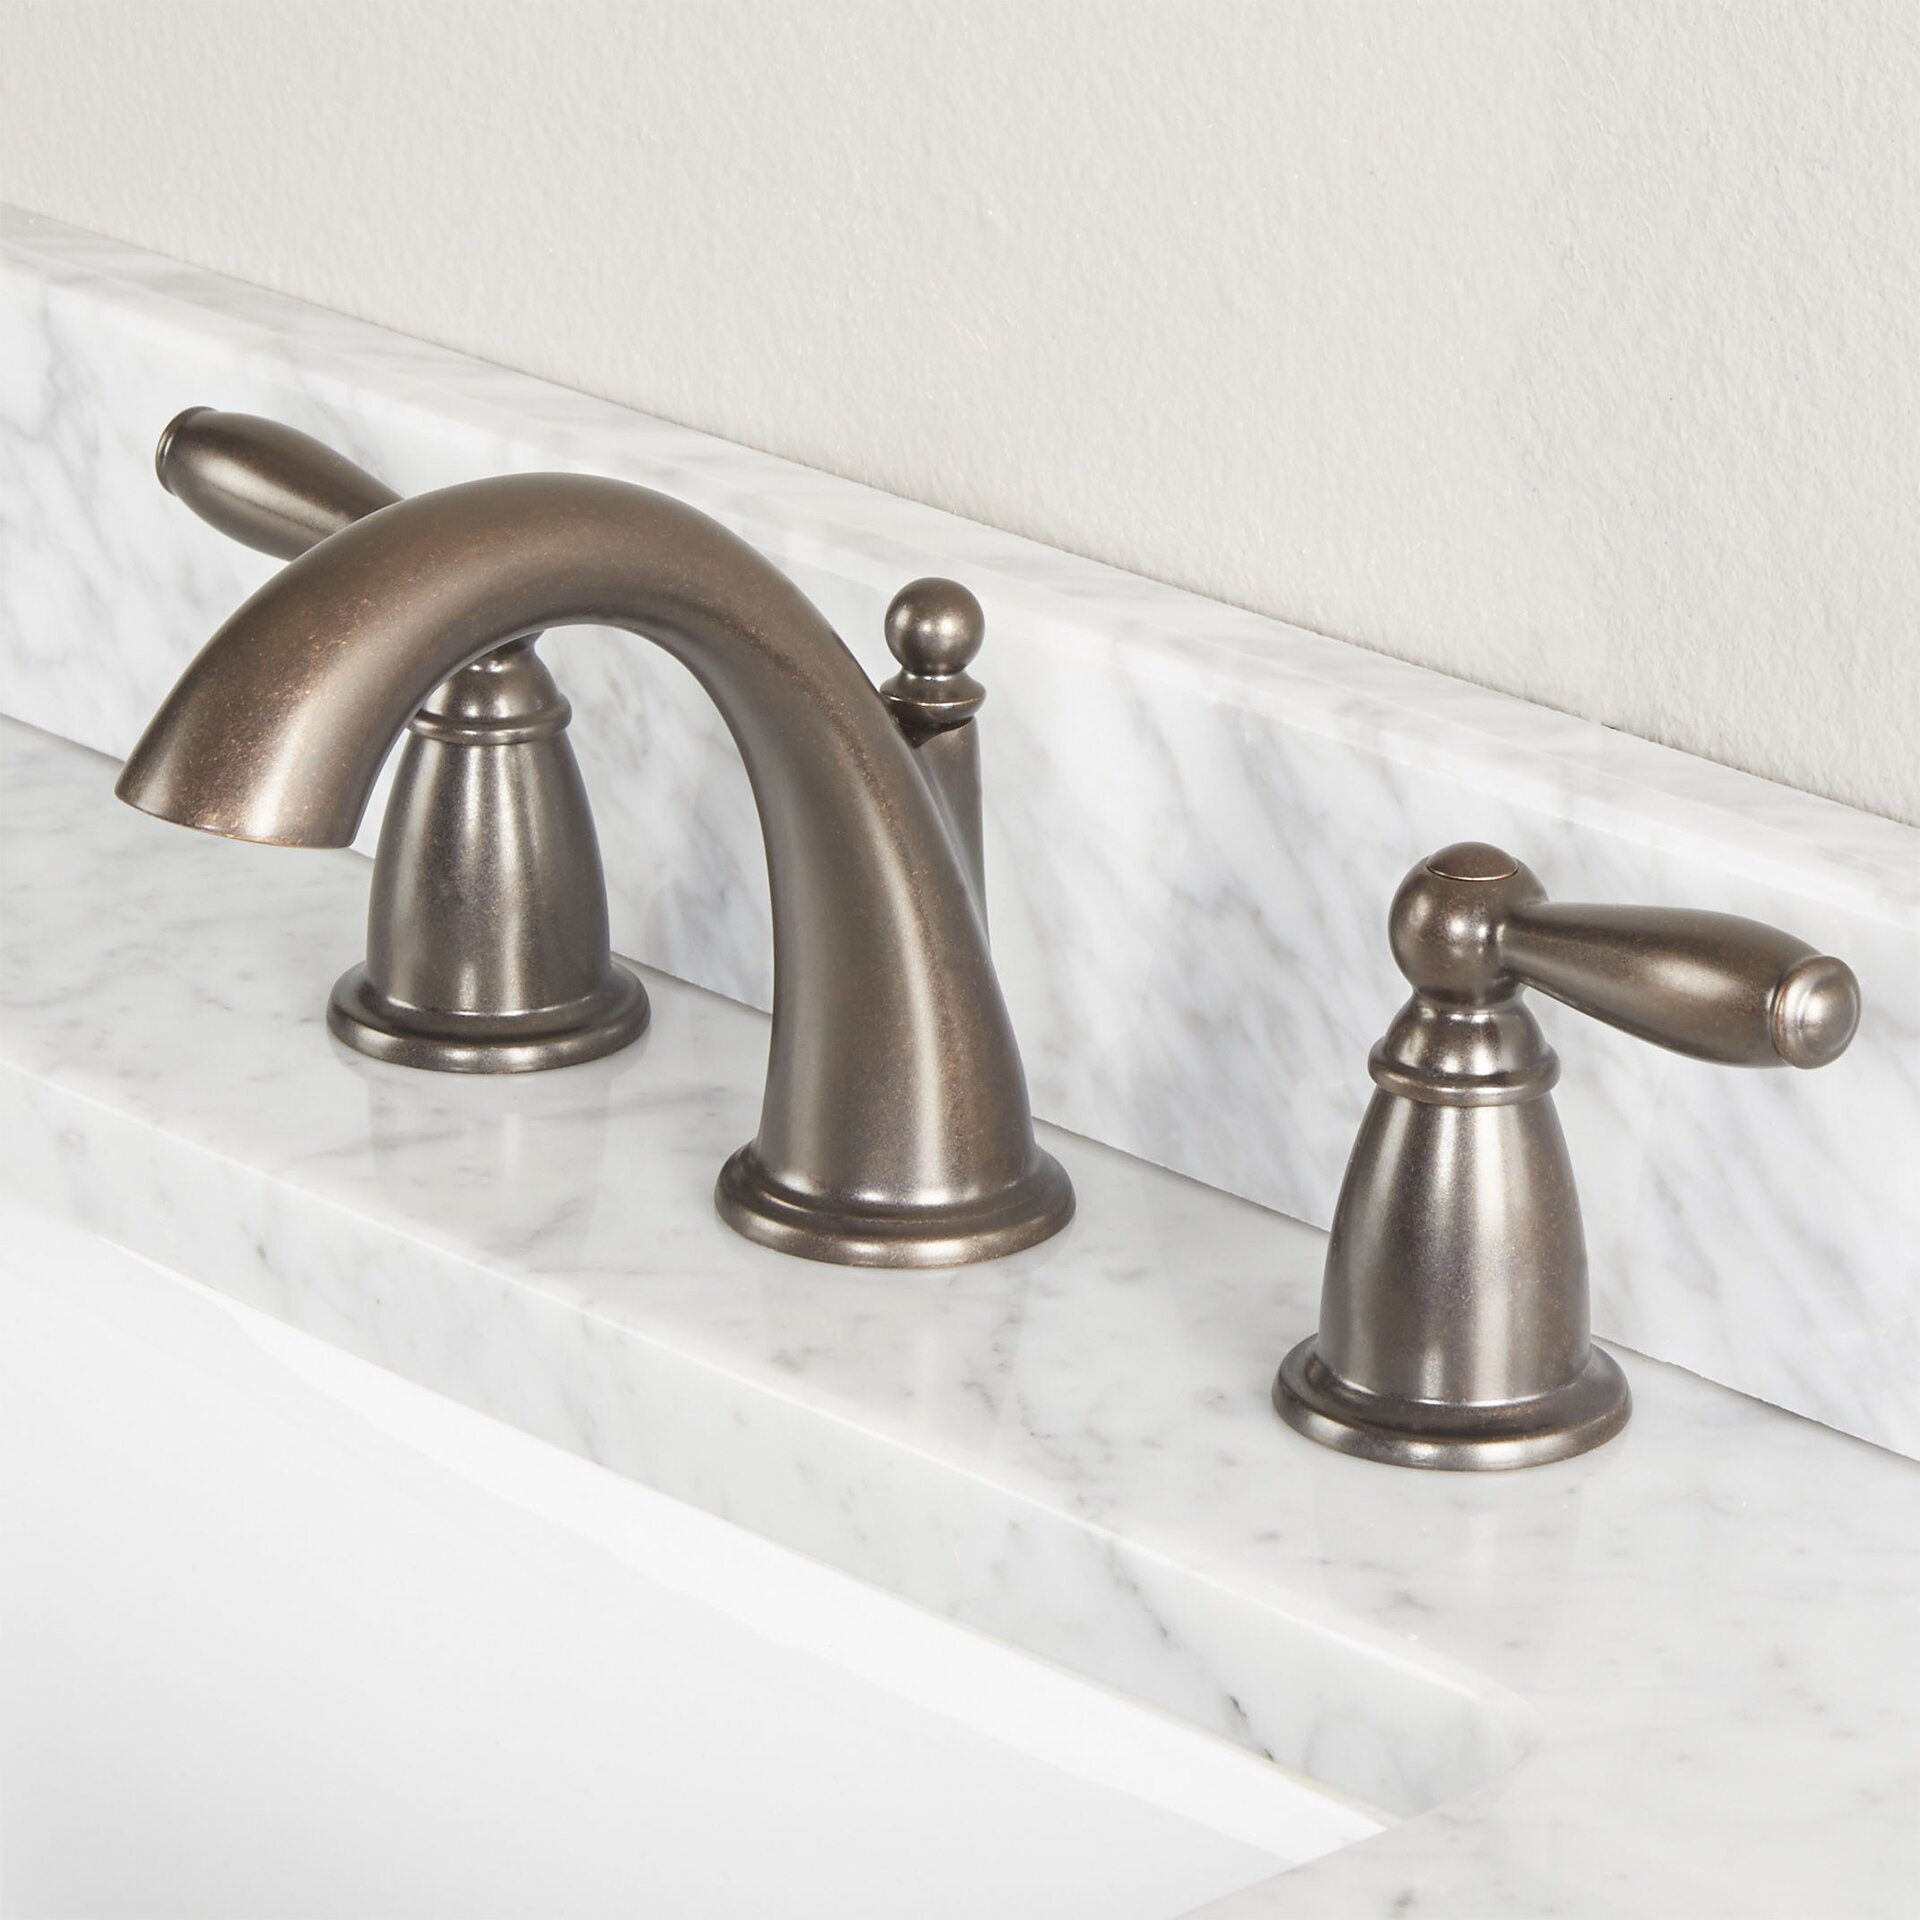 Brantford Double Handle Widespread Bathroom Faucet Wayfair